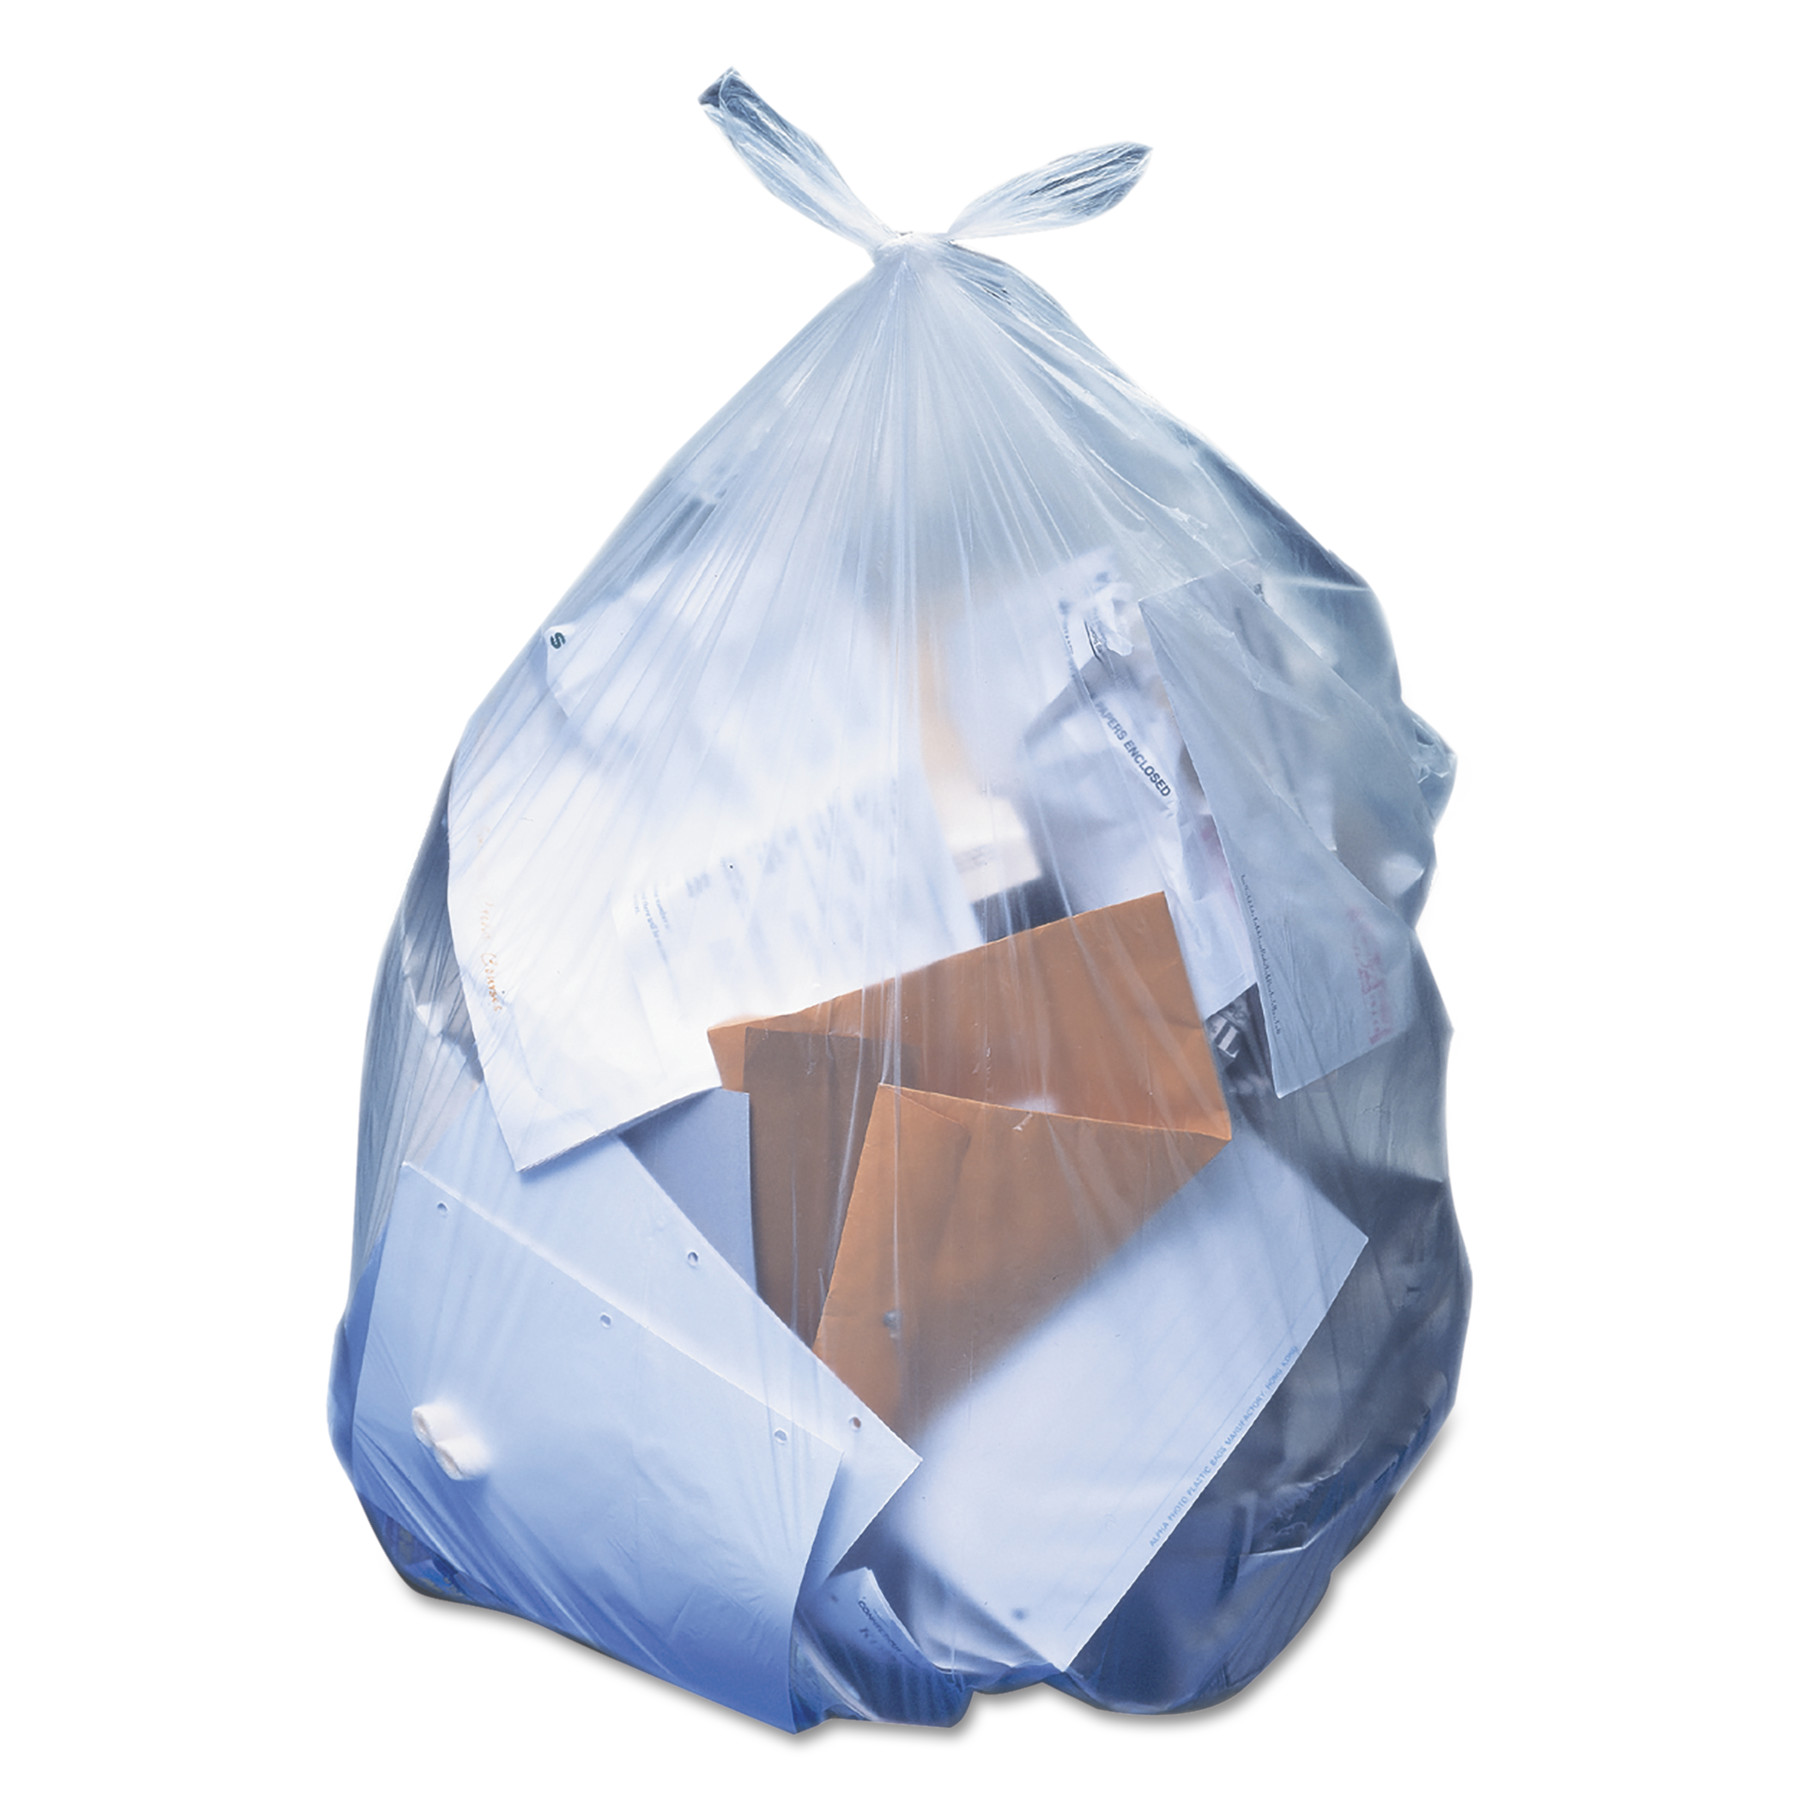 Heritage High-Density Coreless Trash Bags, 33 gal, 13 mic, 33 x 40, Natural, 500/Carton